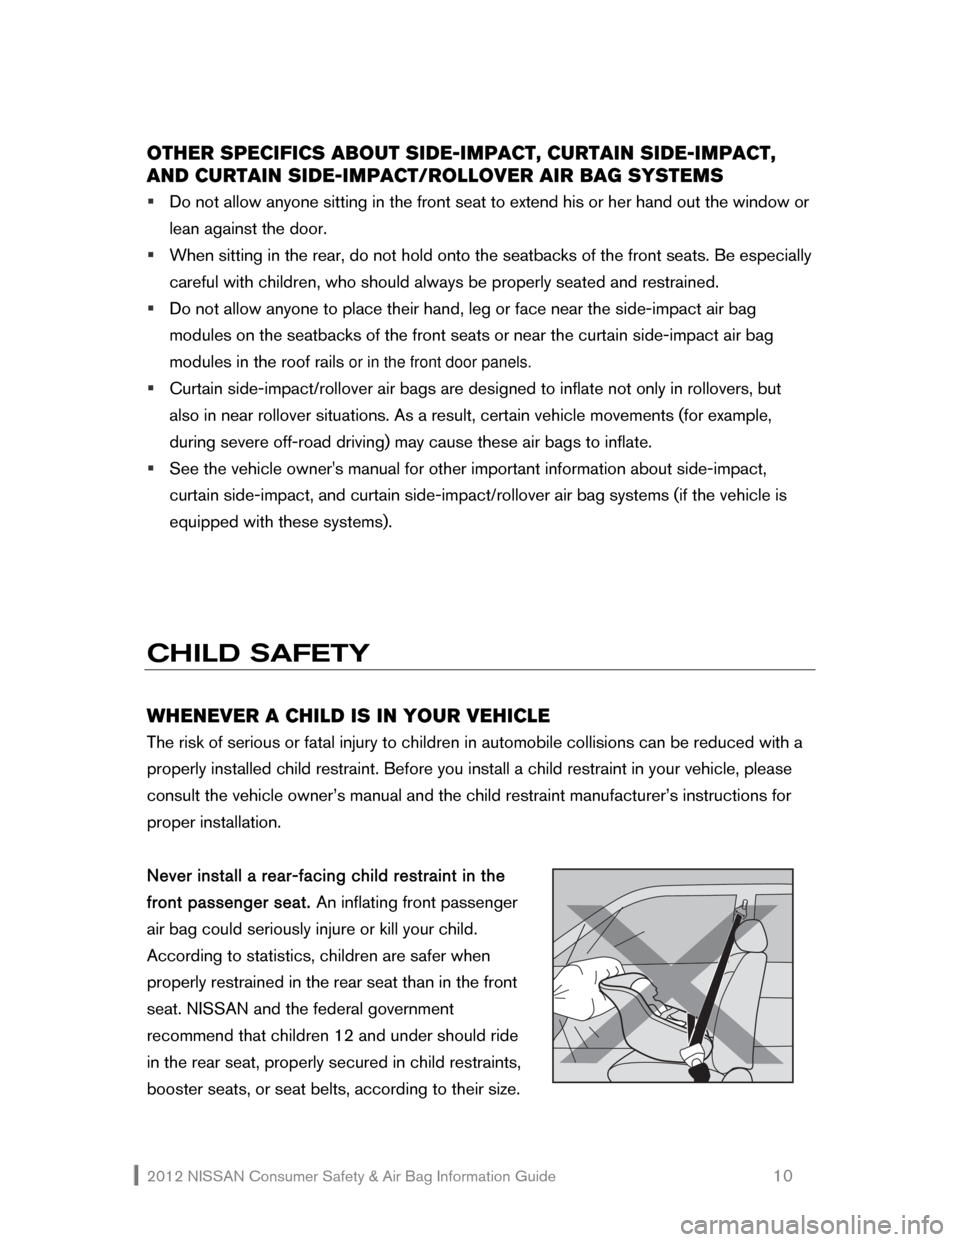 NISSAN ROGUE 2012 1.G Consumer Safety Air Bag Information Guide 2012 NISSAN Consumer Safety & Air Bag Information Guide                                                   10  OTHER SPECIFICS ABOUT SIDE-IMPACT, CURTAIN SIDE-IMPACT,  AND CURTAIN SIDE-IMPACT/ROLLOVER